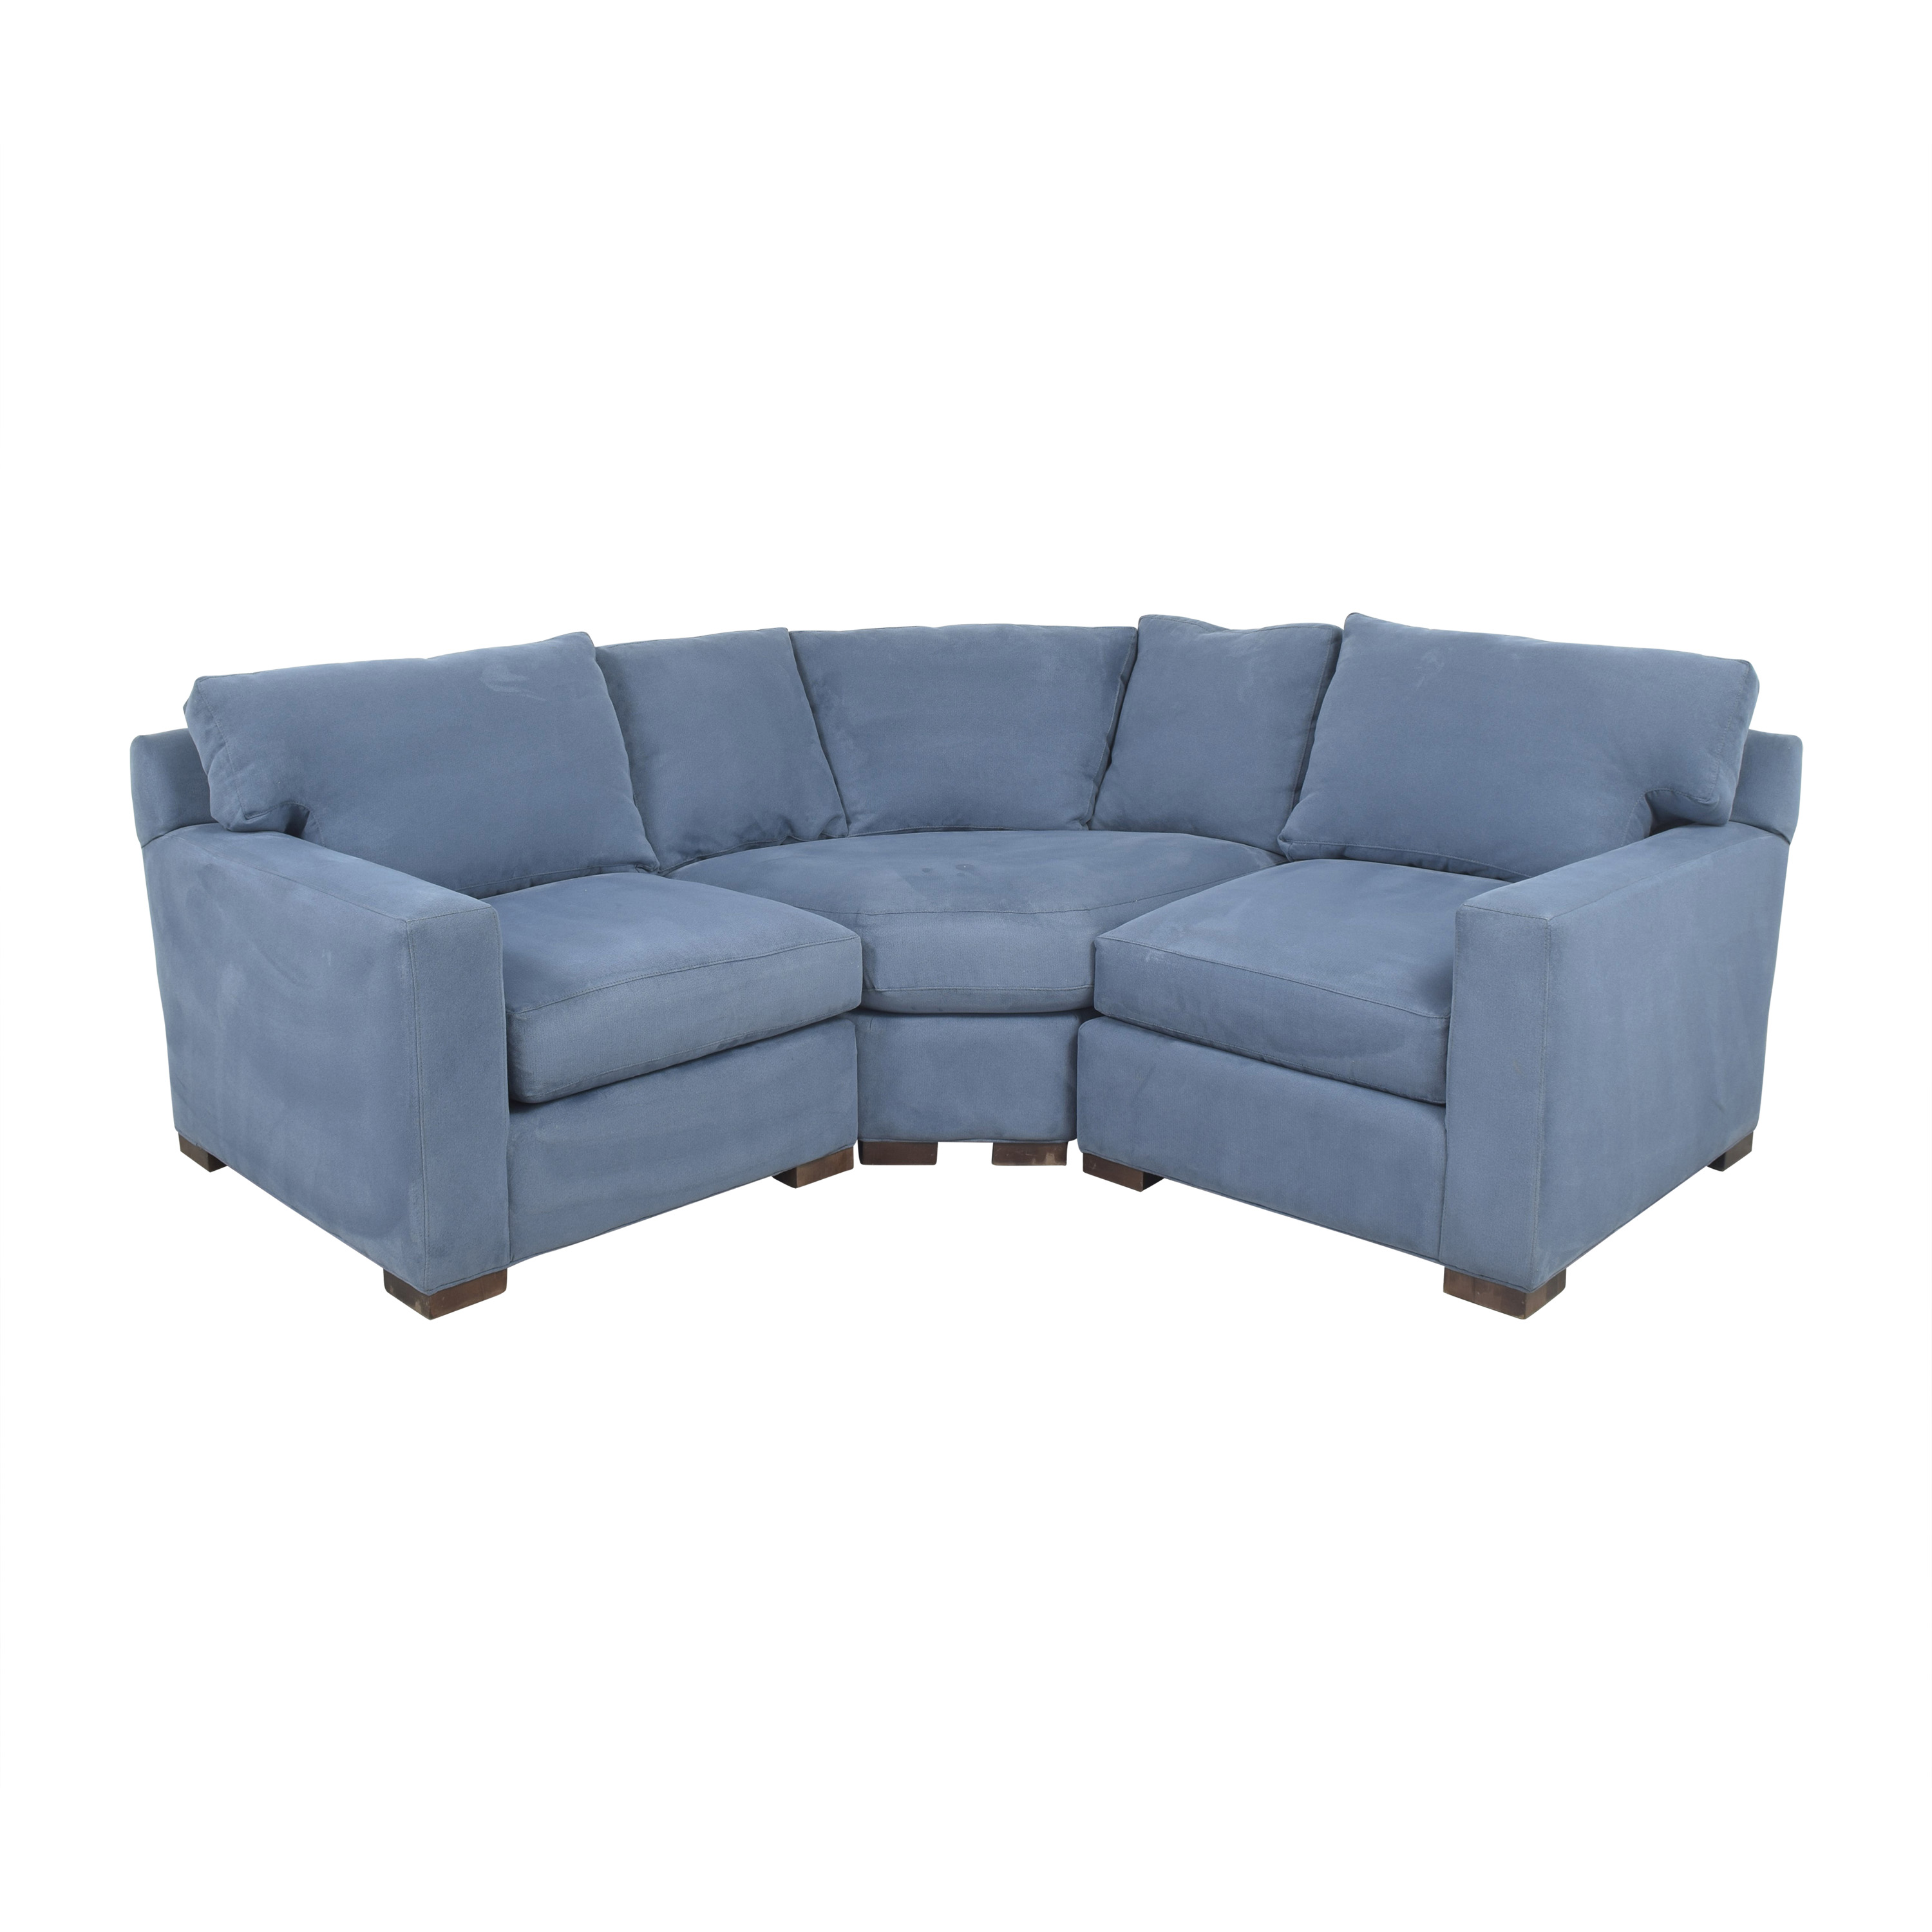 shop Crate & Barrel Axis II Corner Sectional Sofa Crate & Barrel Sofas